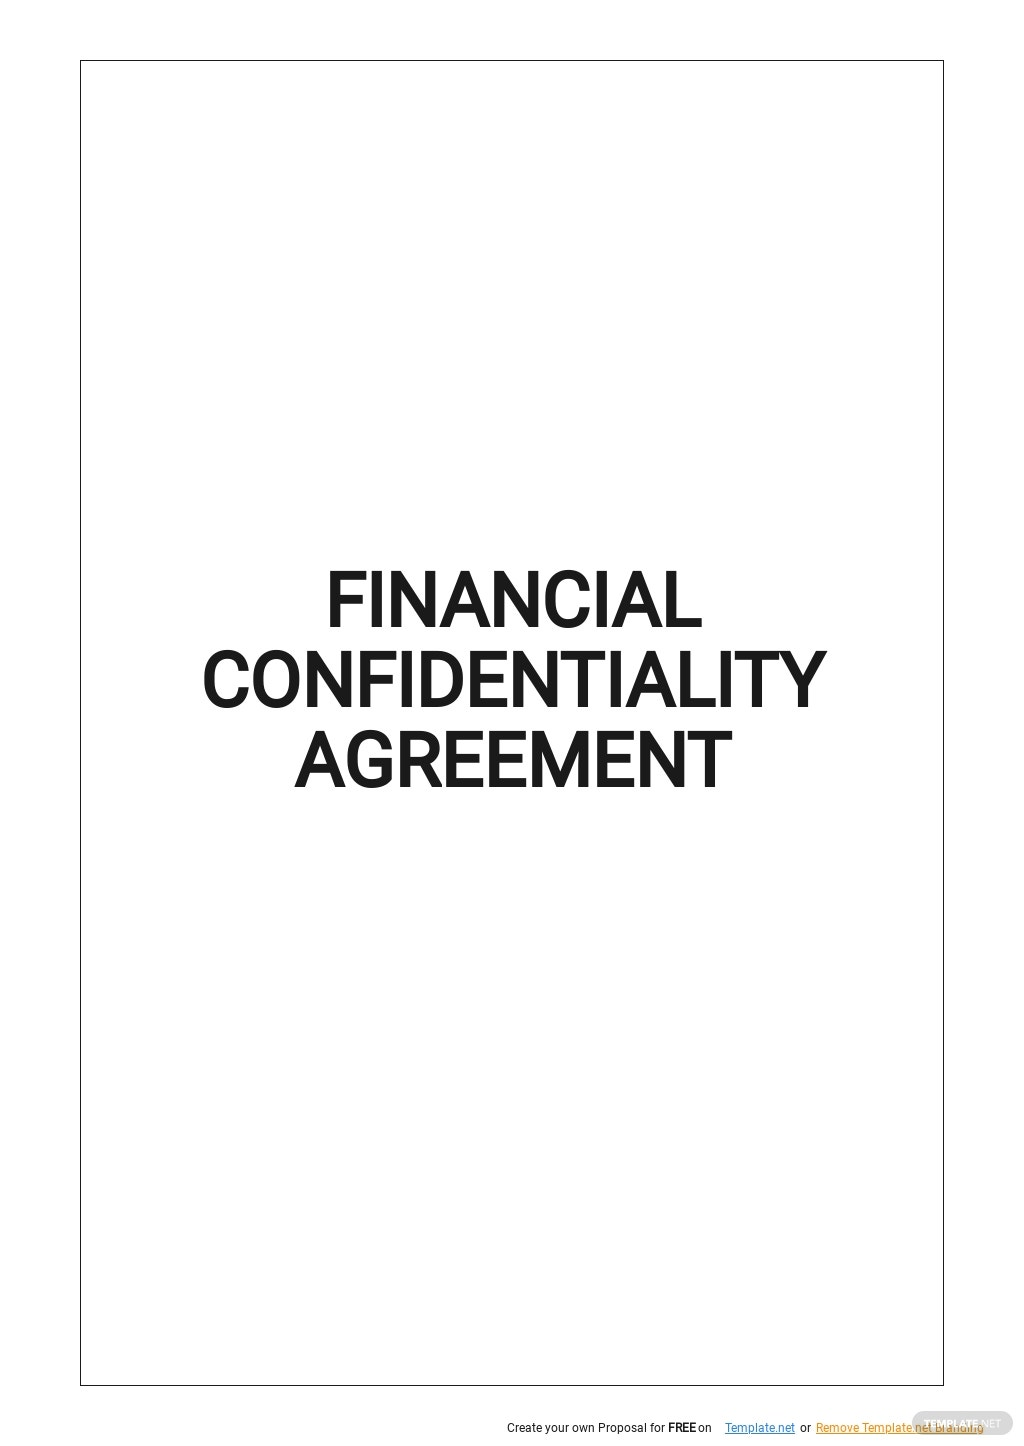 Financial Confidentiality Agreement Template.jpe